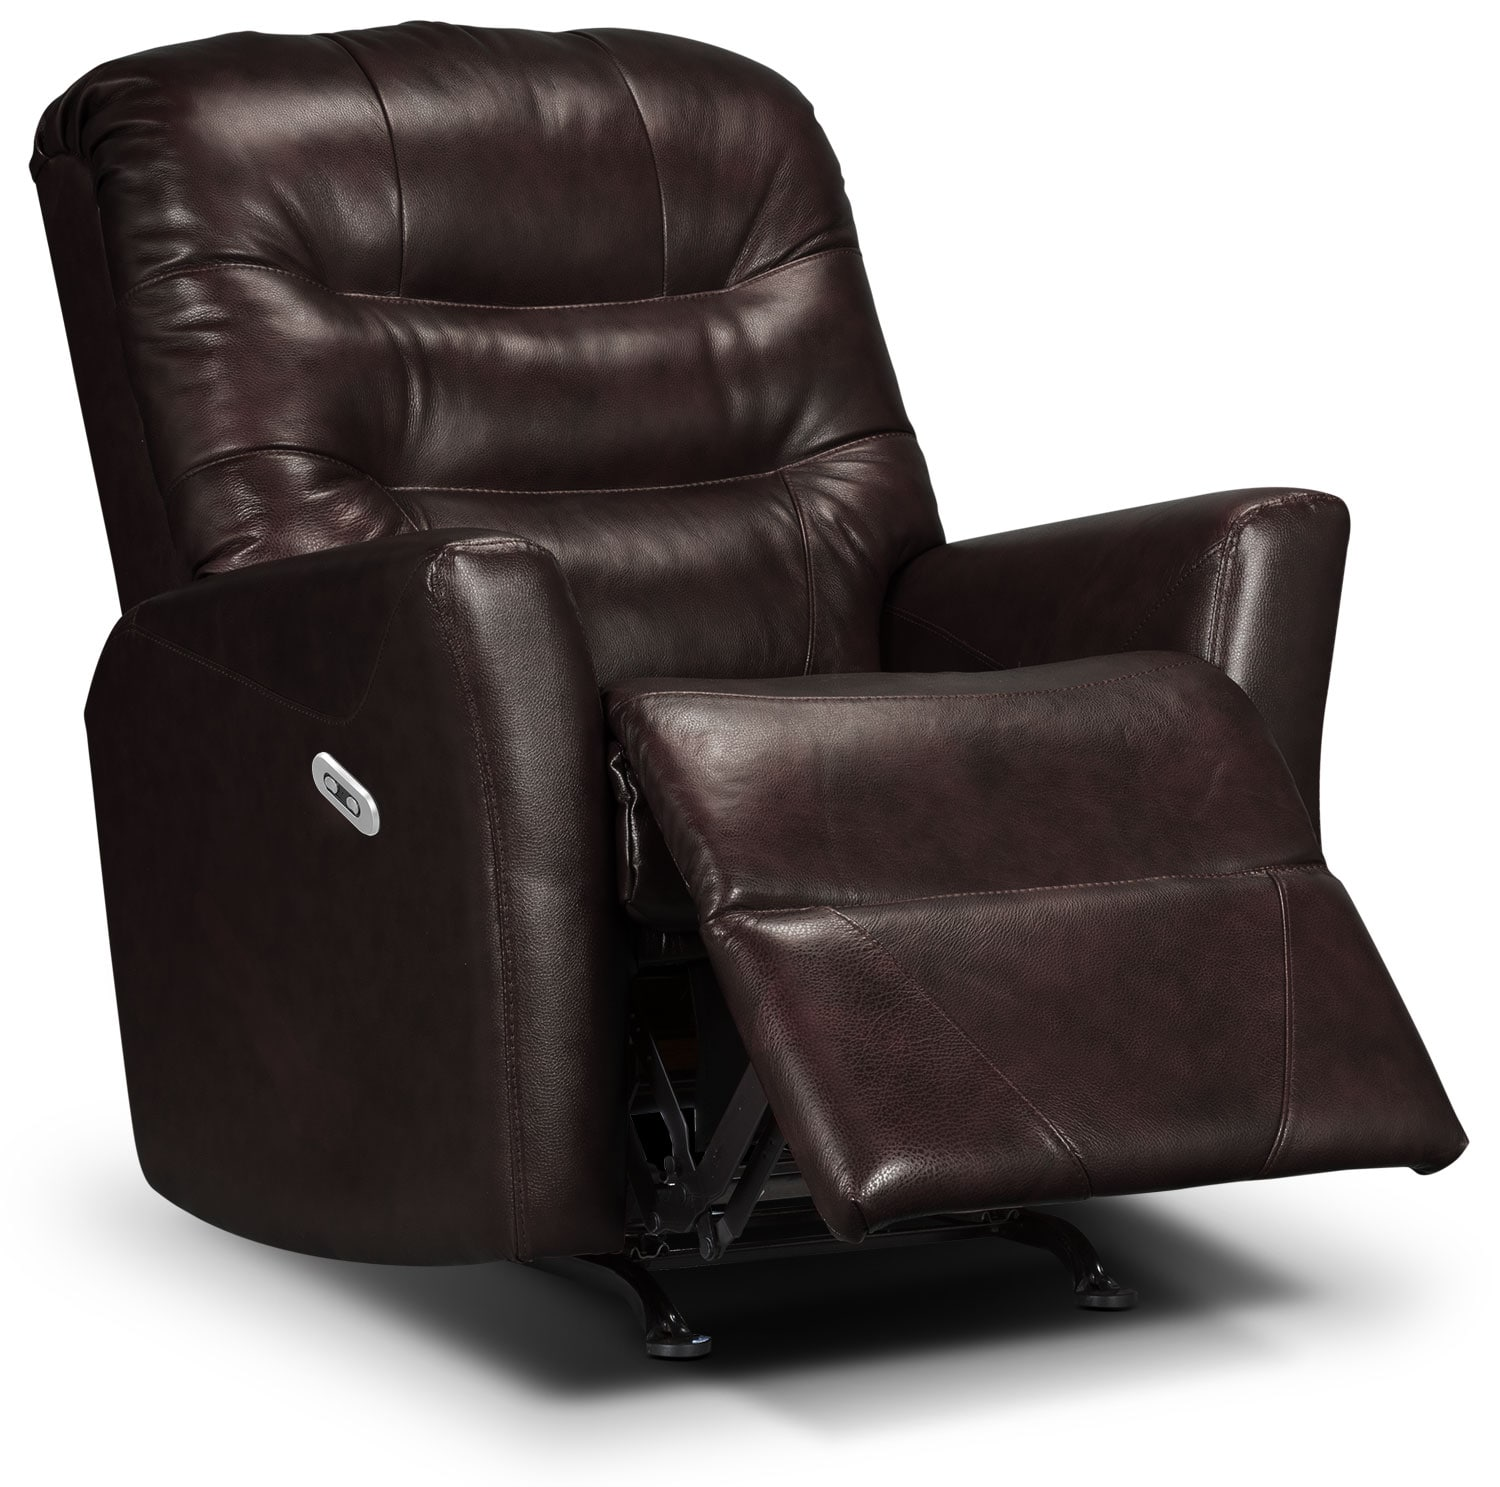 Living Room Furniture - Designed2B Recliner 4560 Bonded Leather Power Recliner - Chocolate